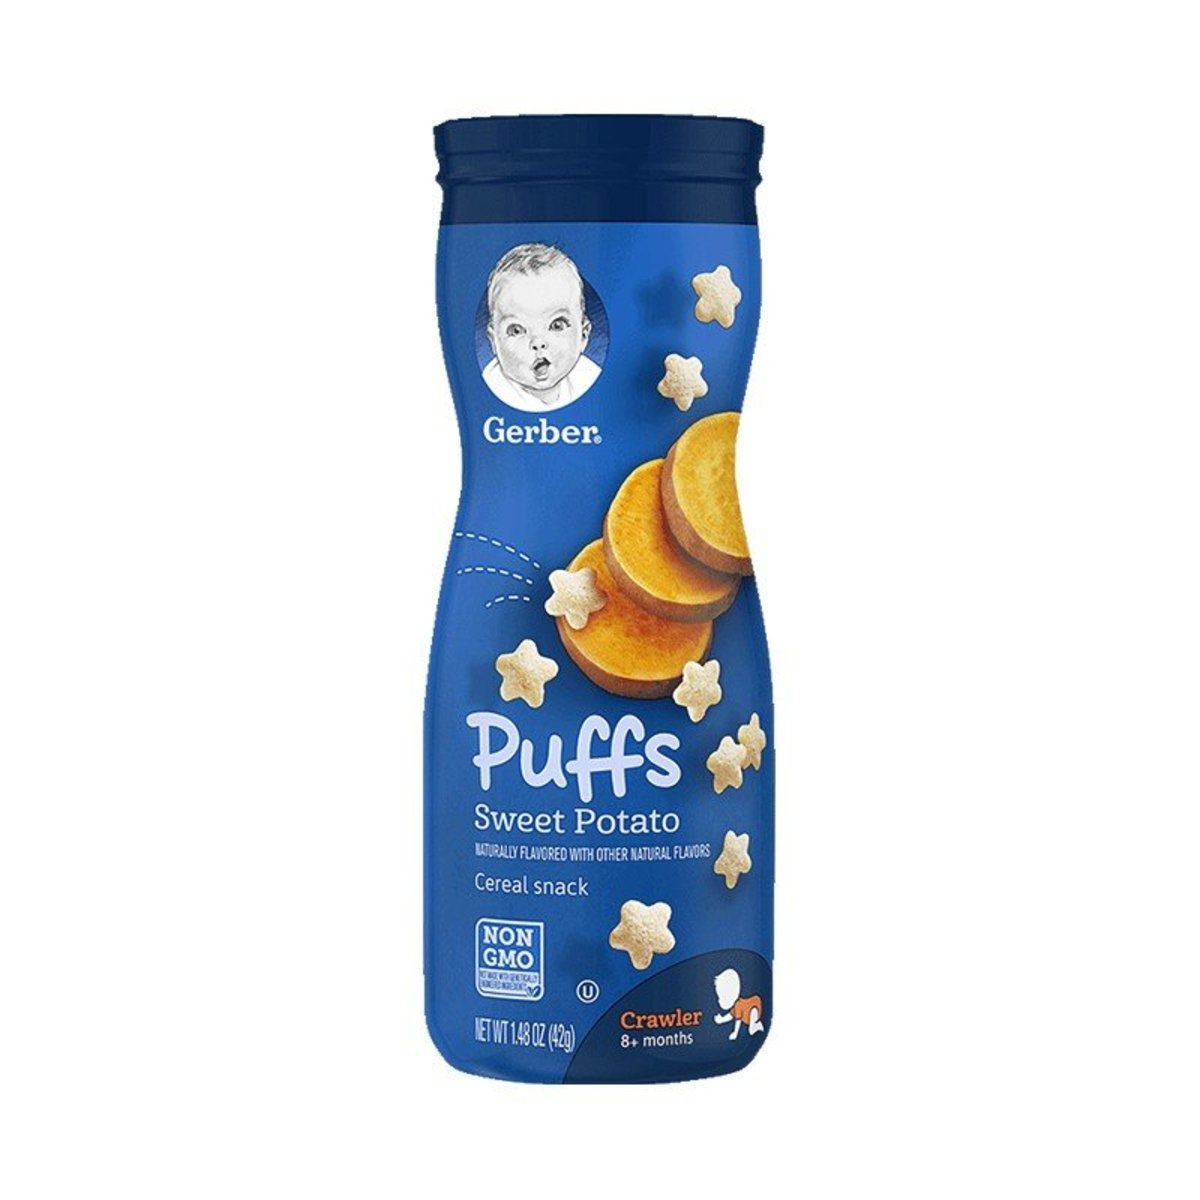 Sweet Potato Puffs Cereal Snack 42g(8+months)(parallel import)